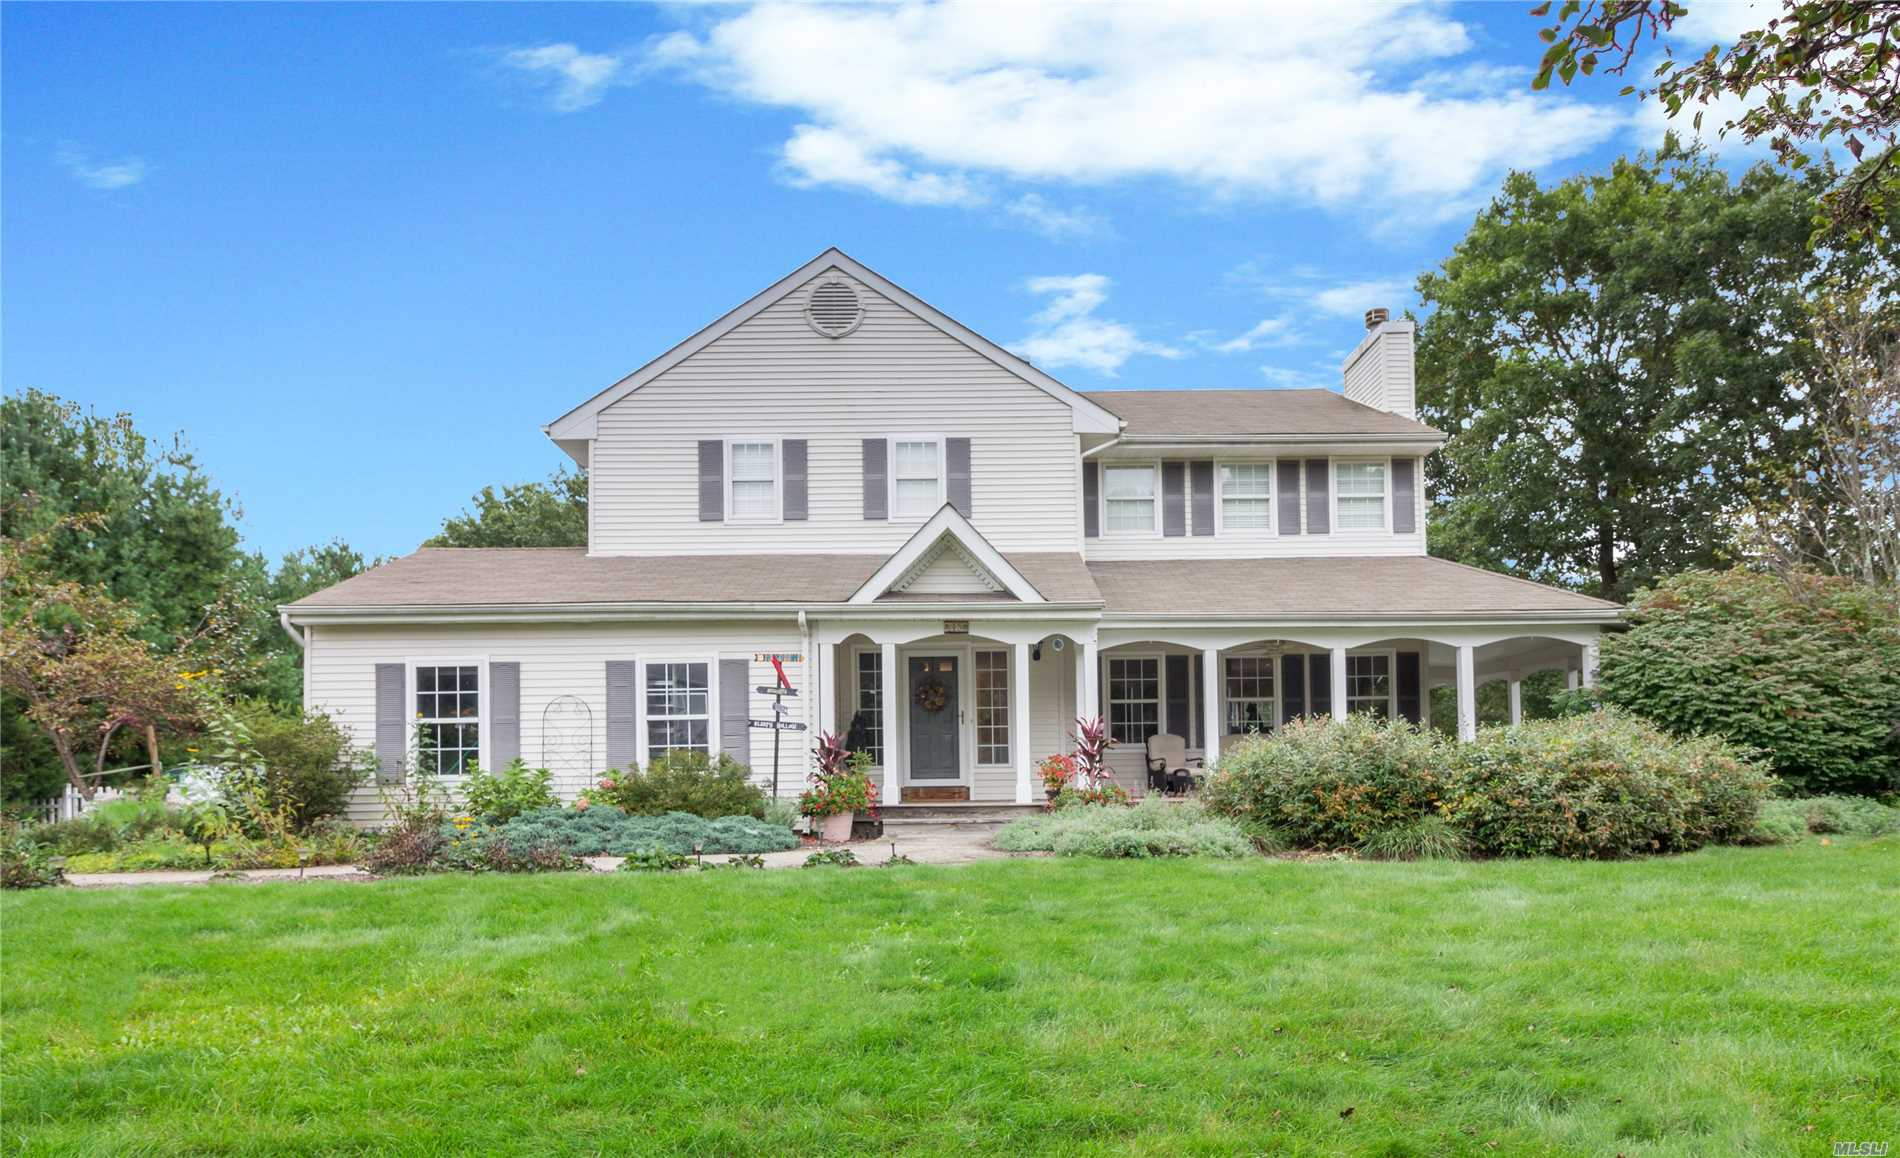 Photo of home for sale at 45 Fieldhouse Ave, East Setauket NY